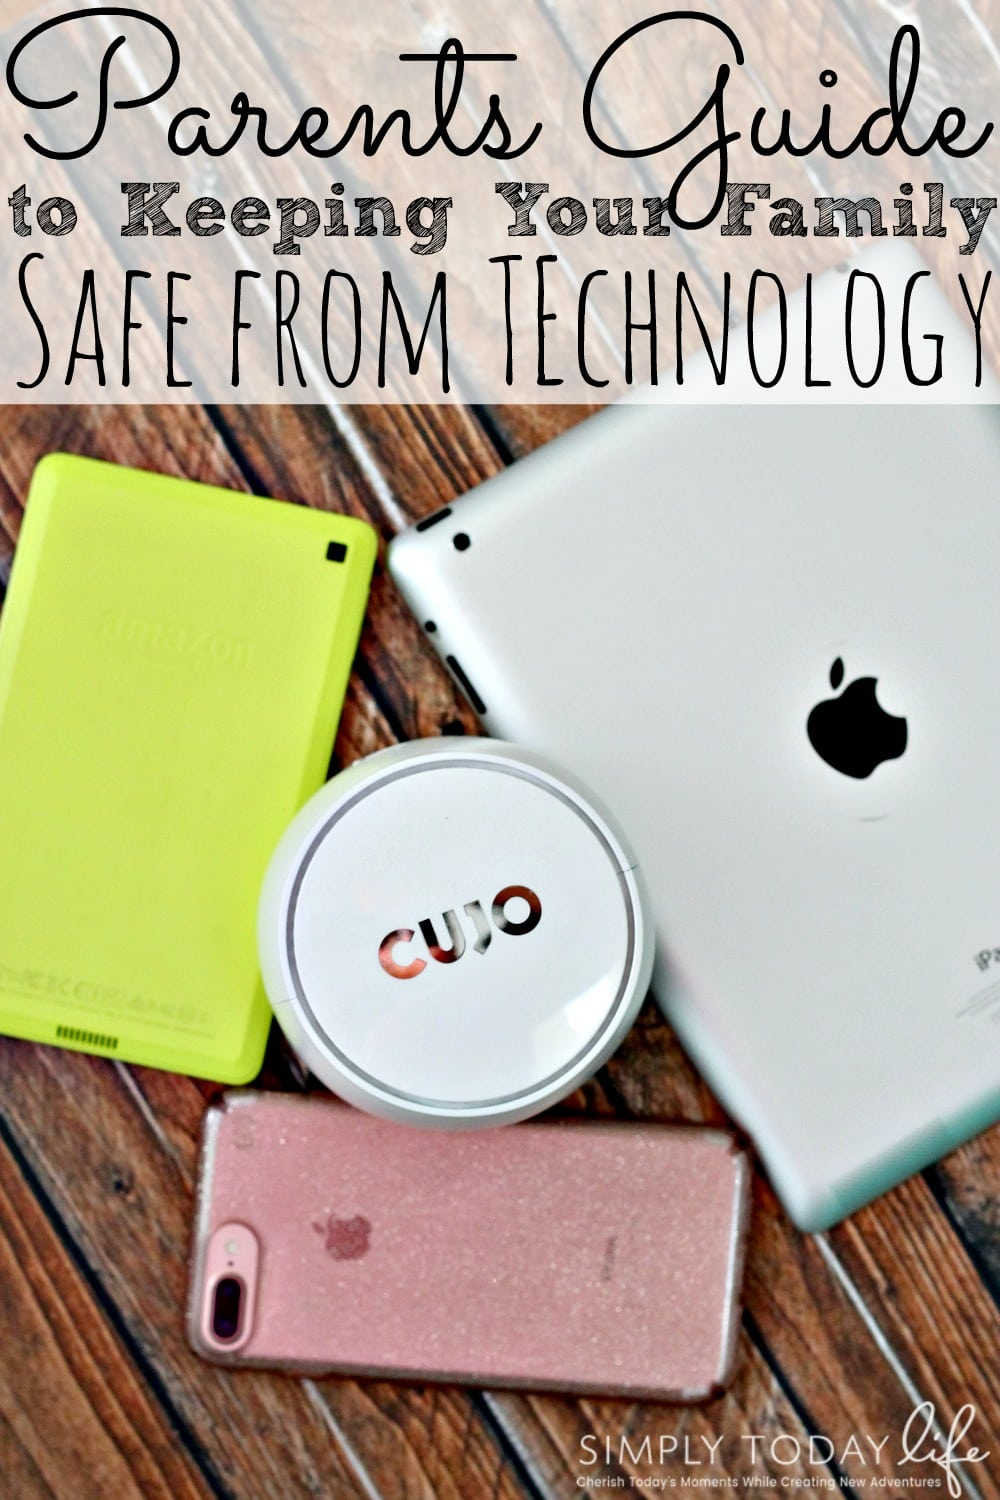 Parents Guide To Keeping Your Family Safe From Technology with CUJO - simplytodaylife.com